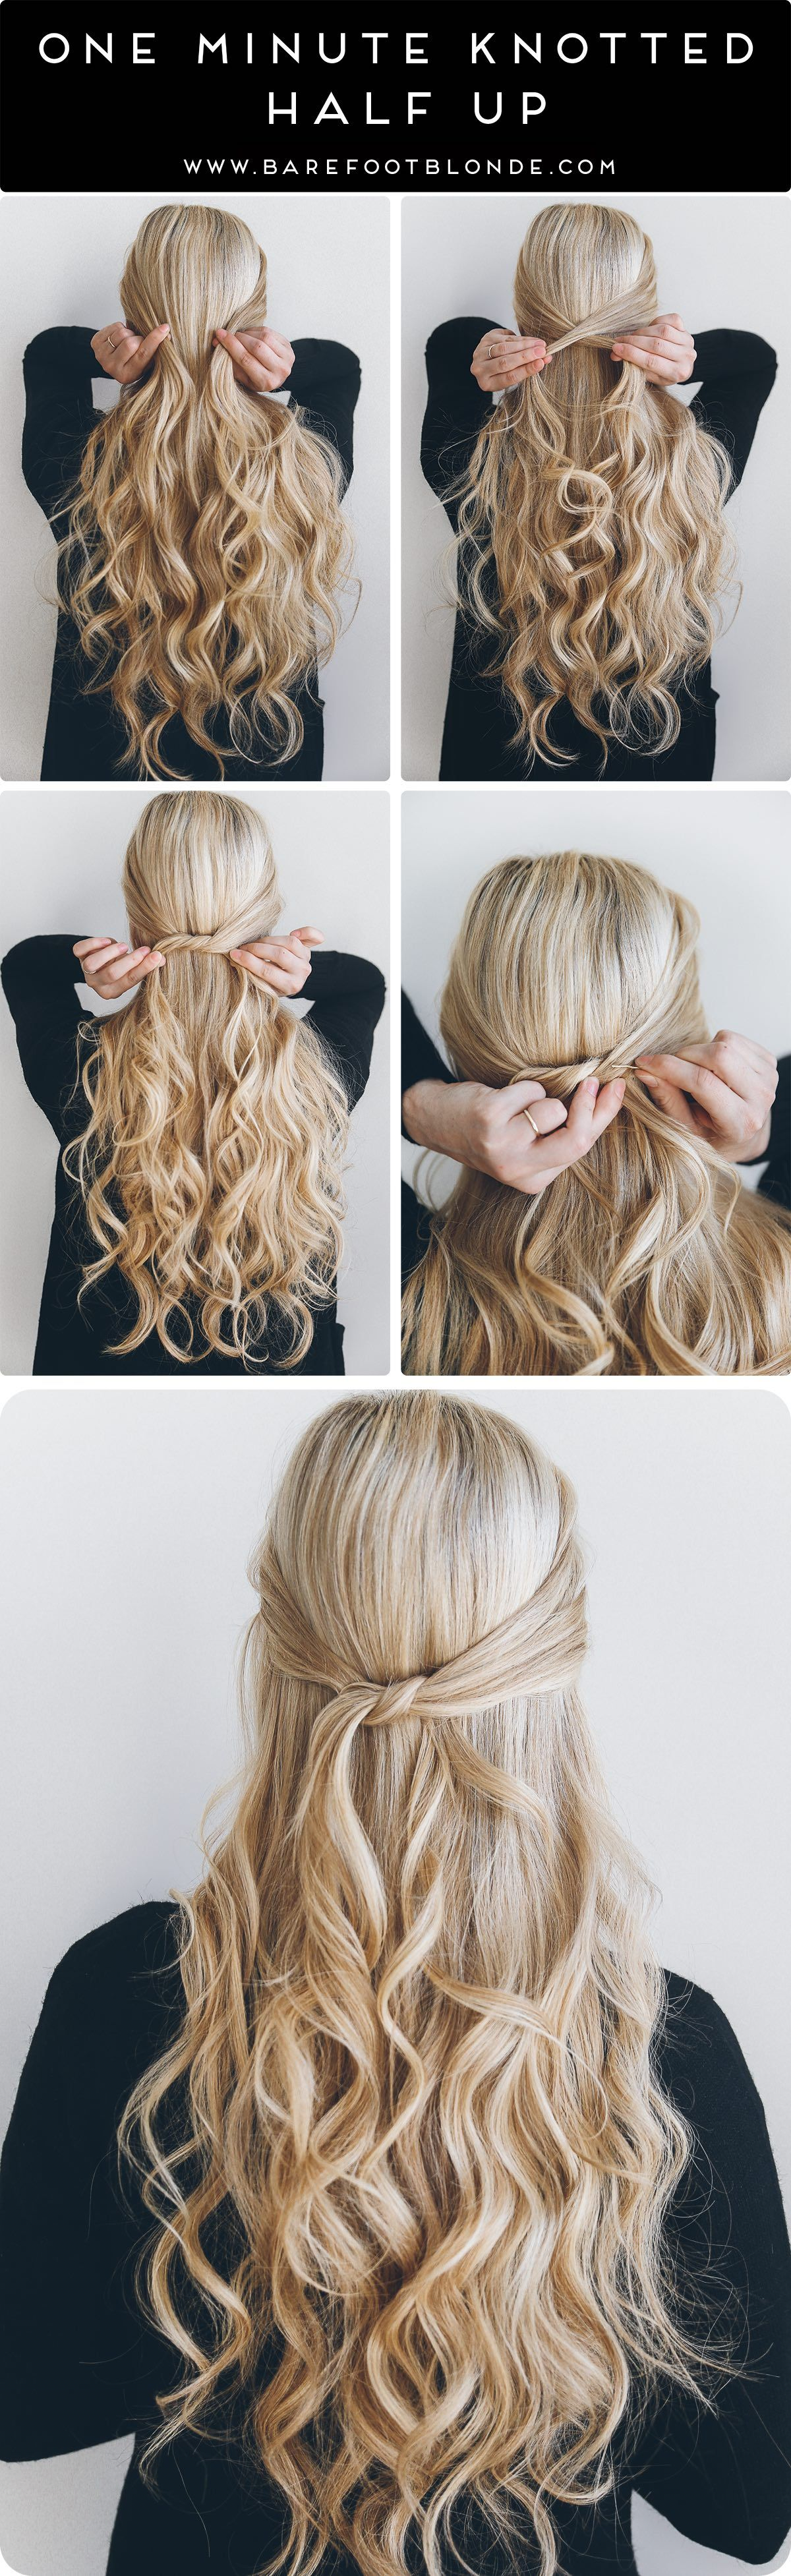 Hairstyle ideas quick easy hair half up knotted hairstyles blonde also rh pinterest